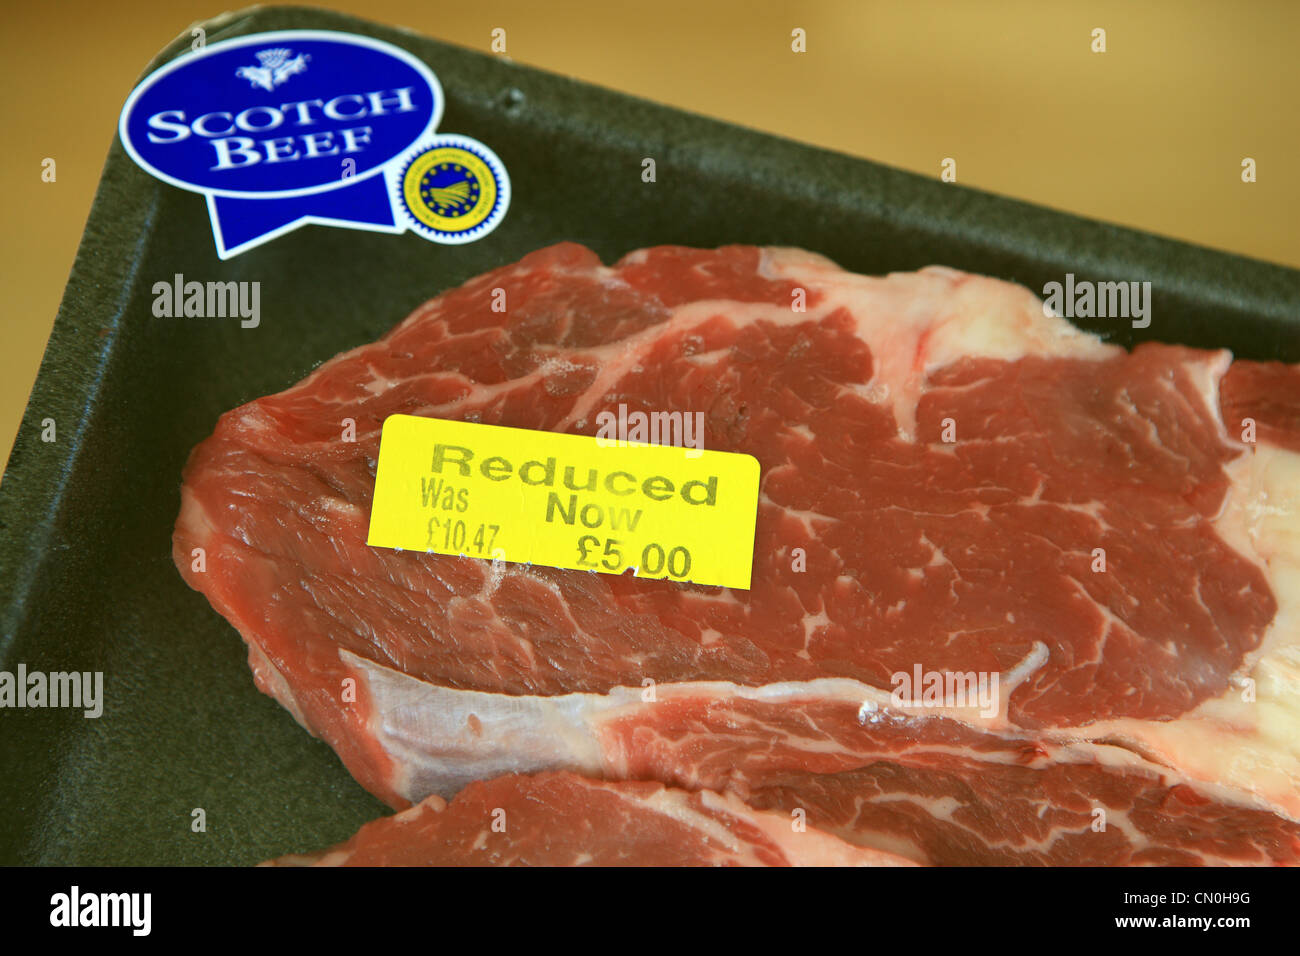 Scotch beef reduced in price in a supermarket - Stock Image